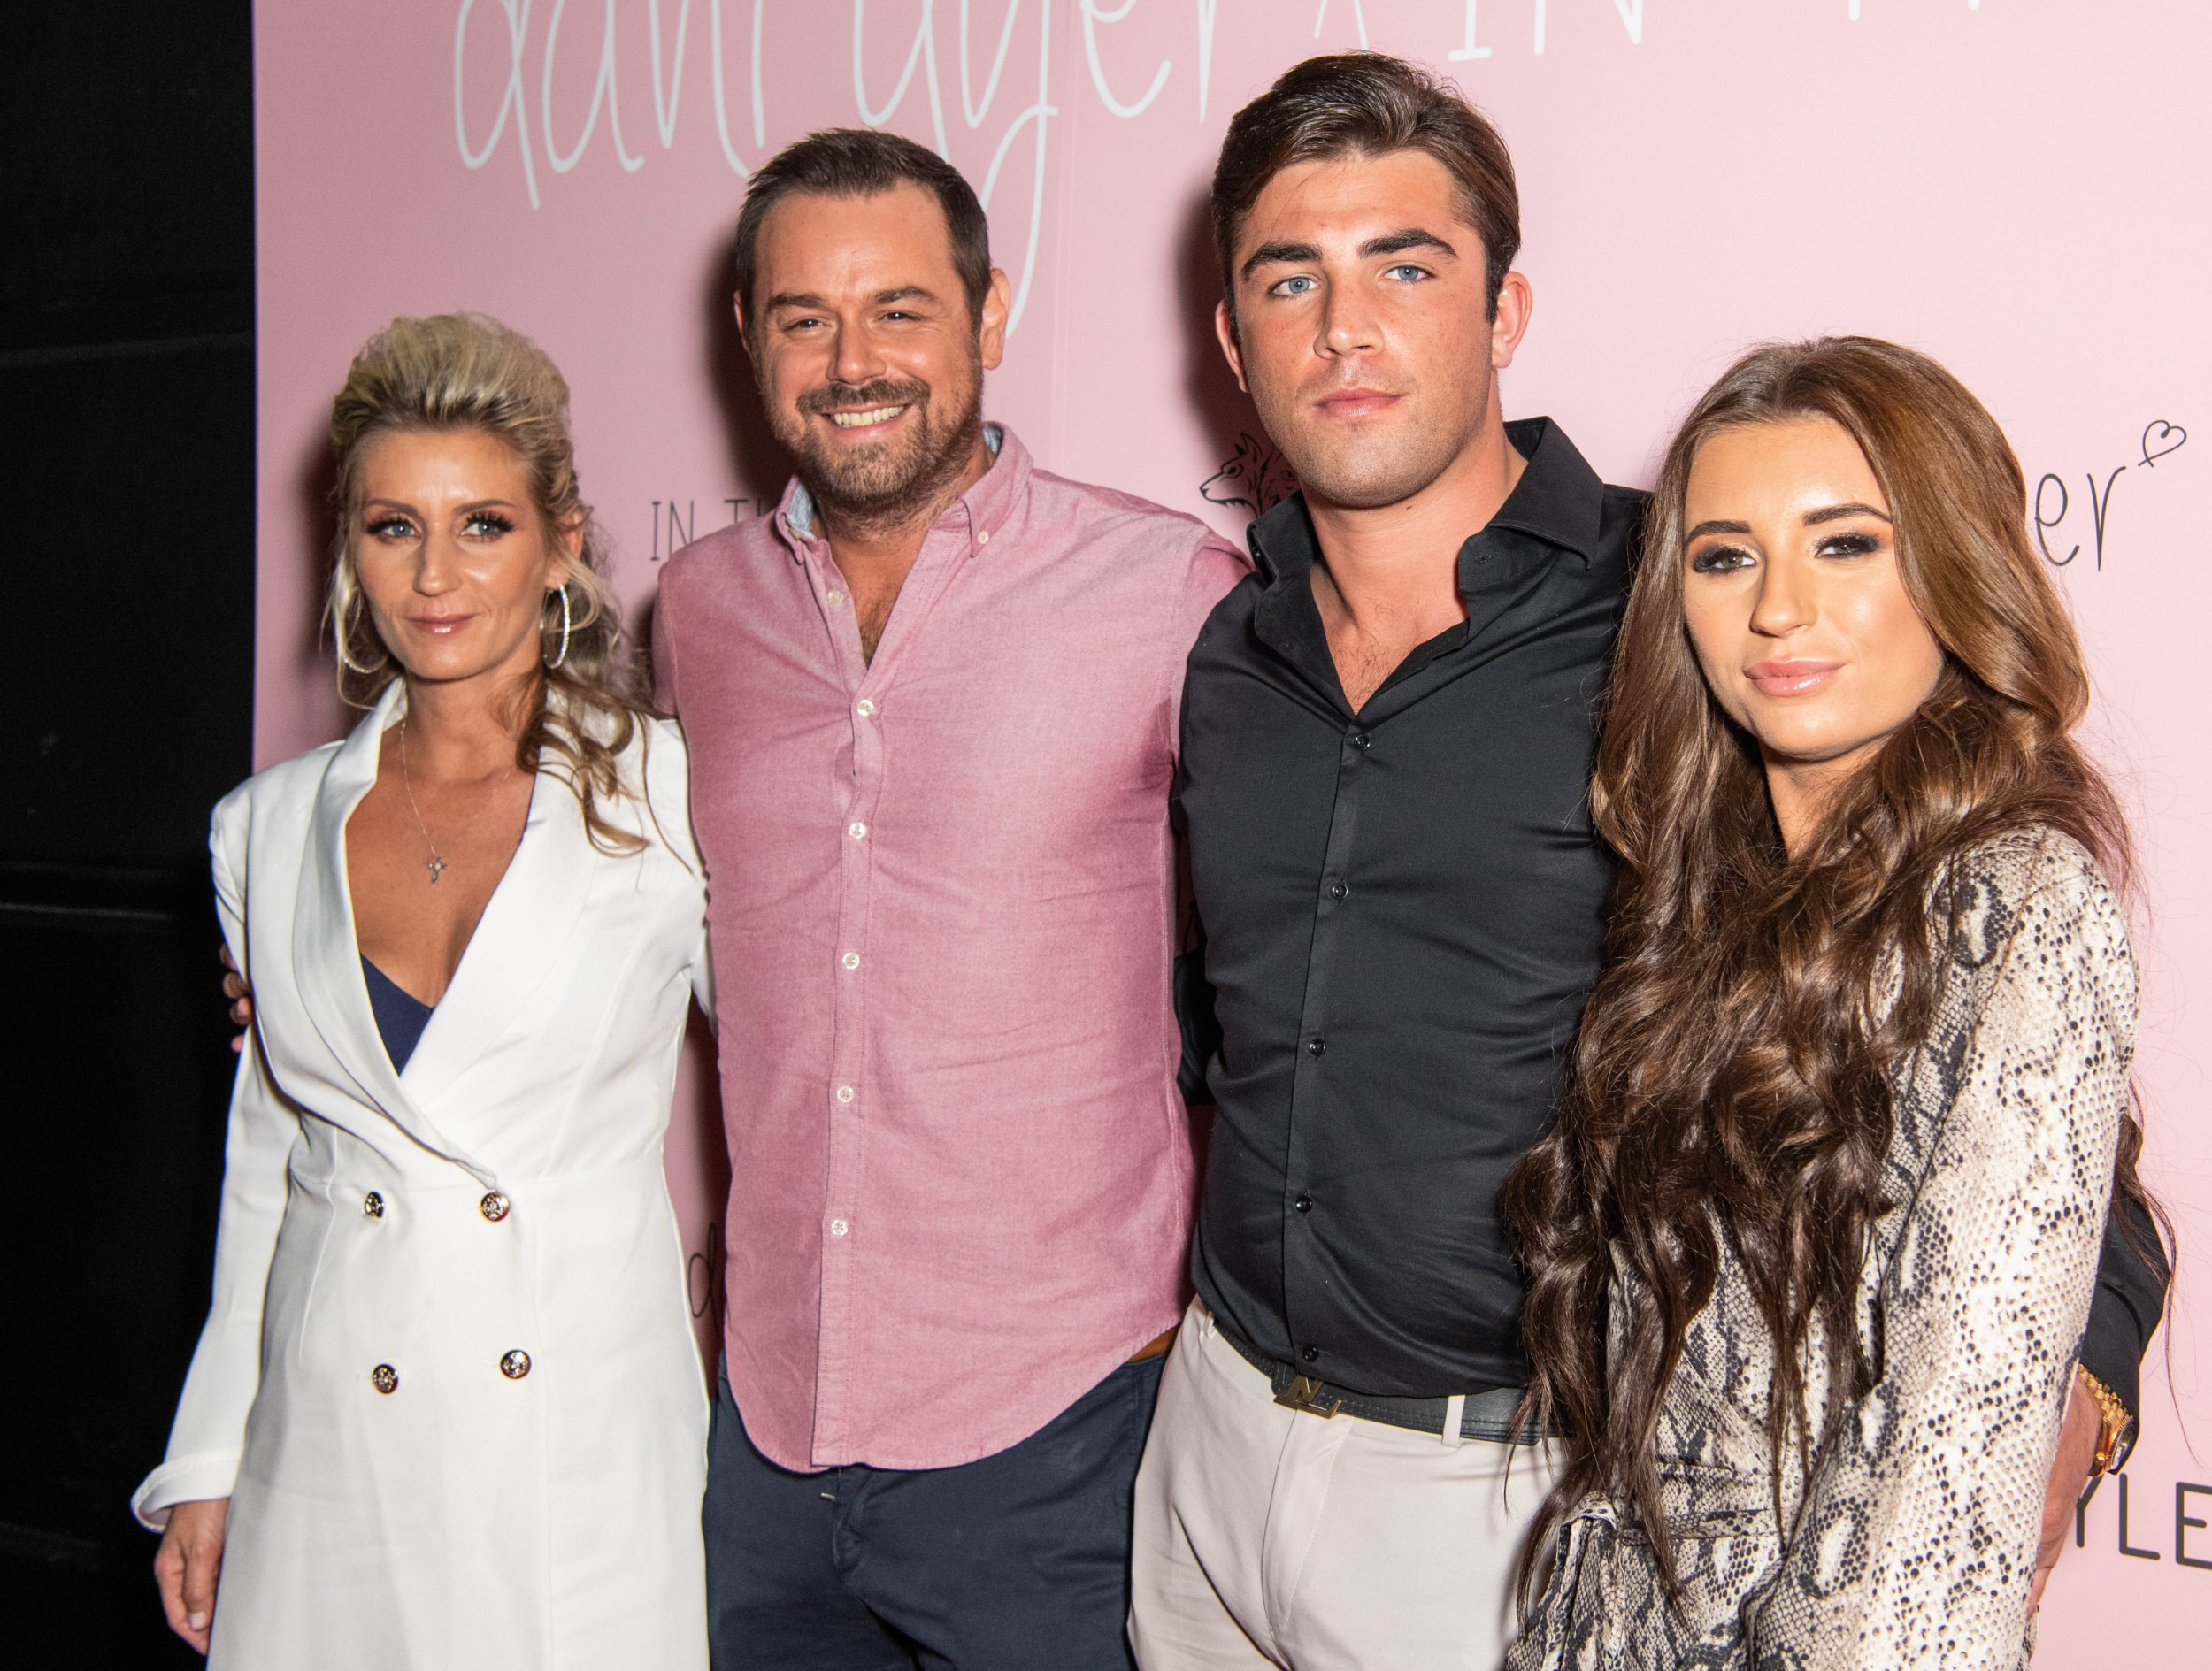 Dani Dyer blasts any chance of a Danny Dyer and Jack Fincham fight: '100% BS'